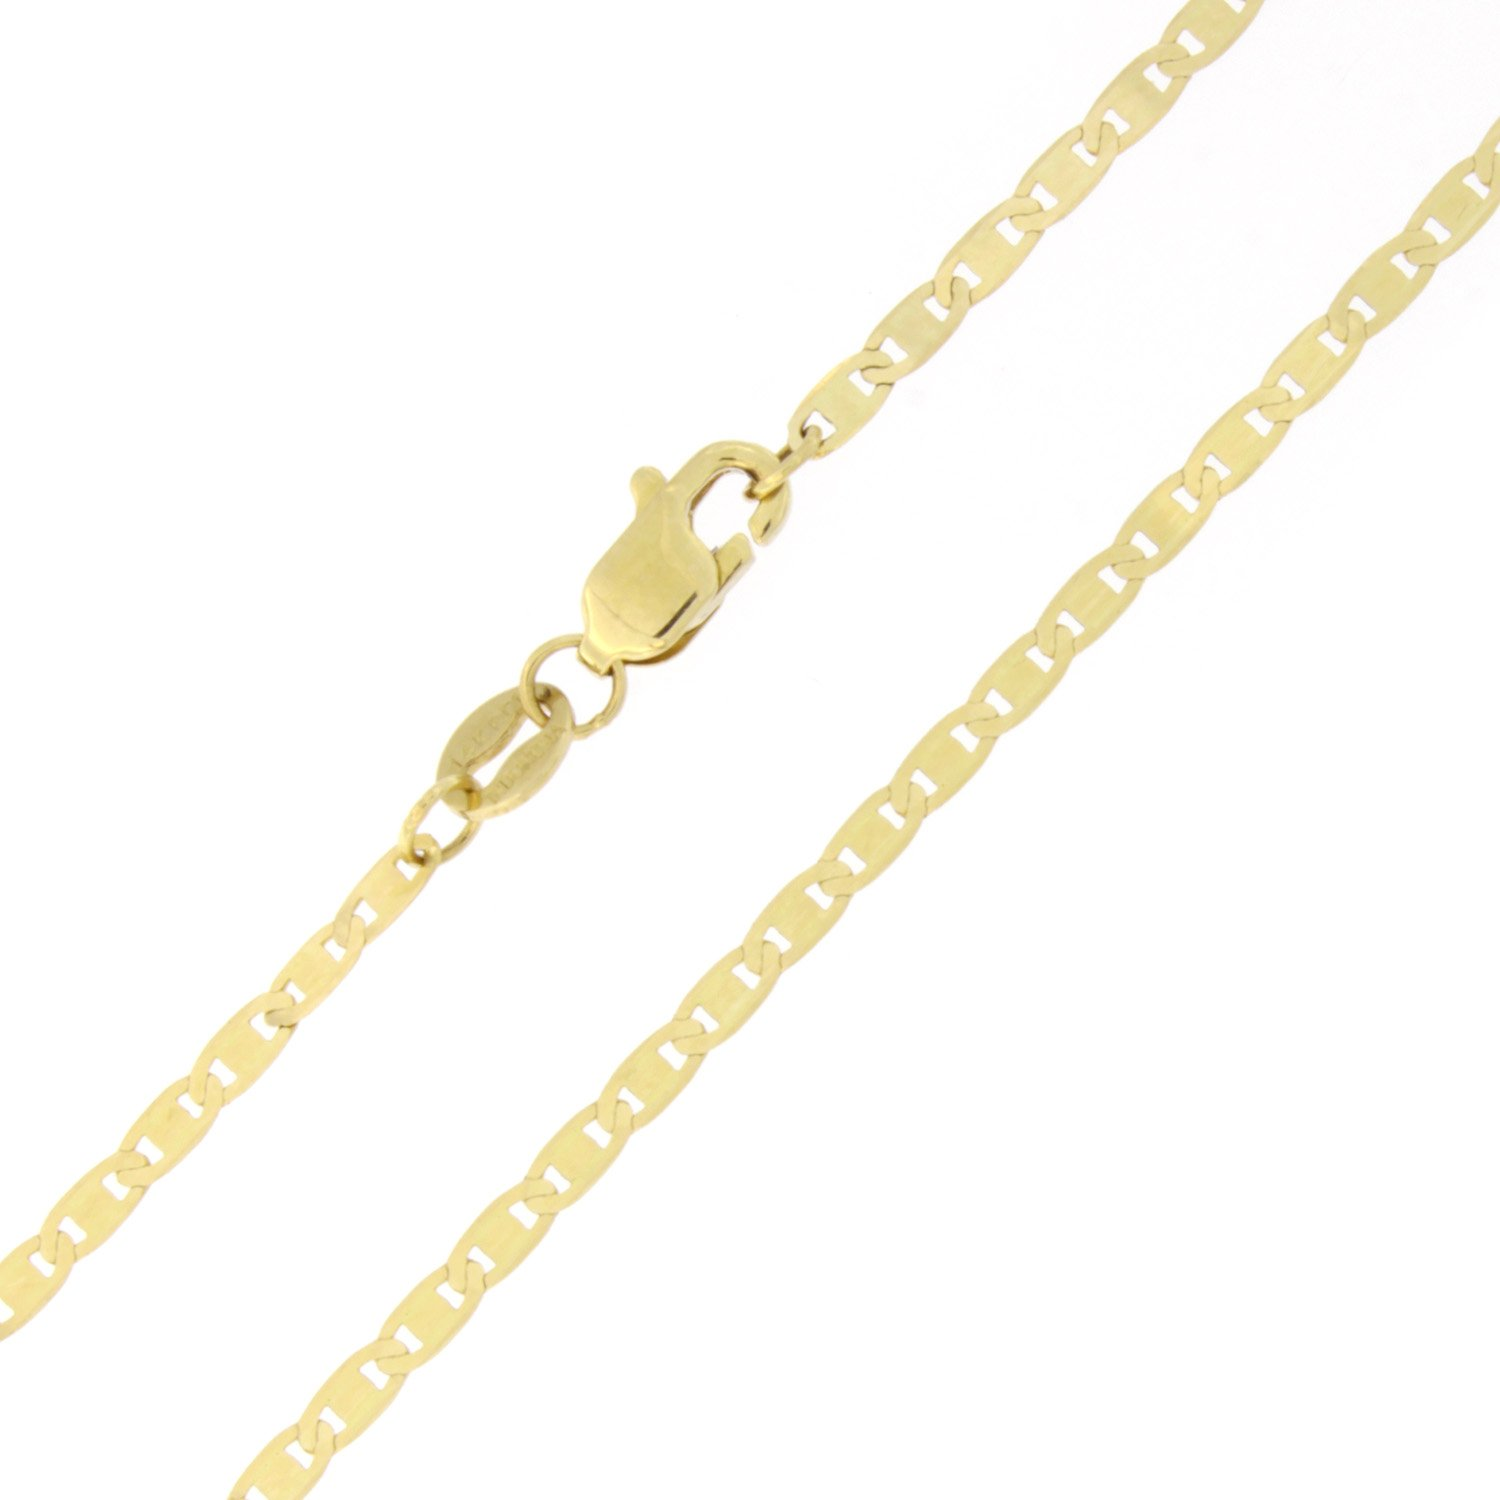 Solid 14k Yellow Gold 1.7mm Mariner Chain Anklet, 10''